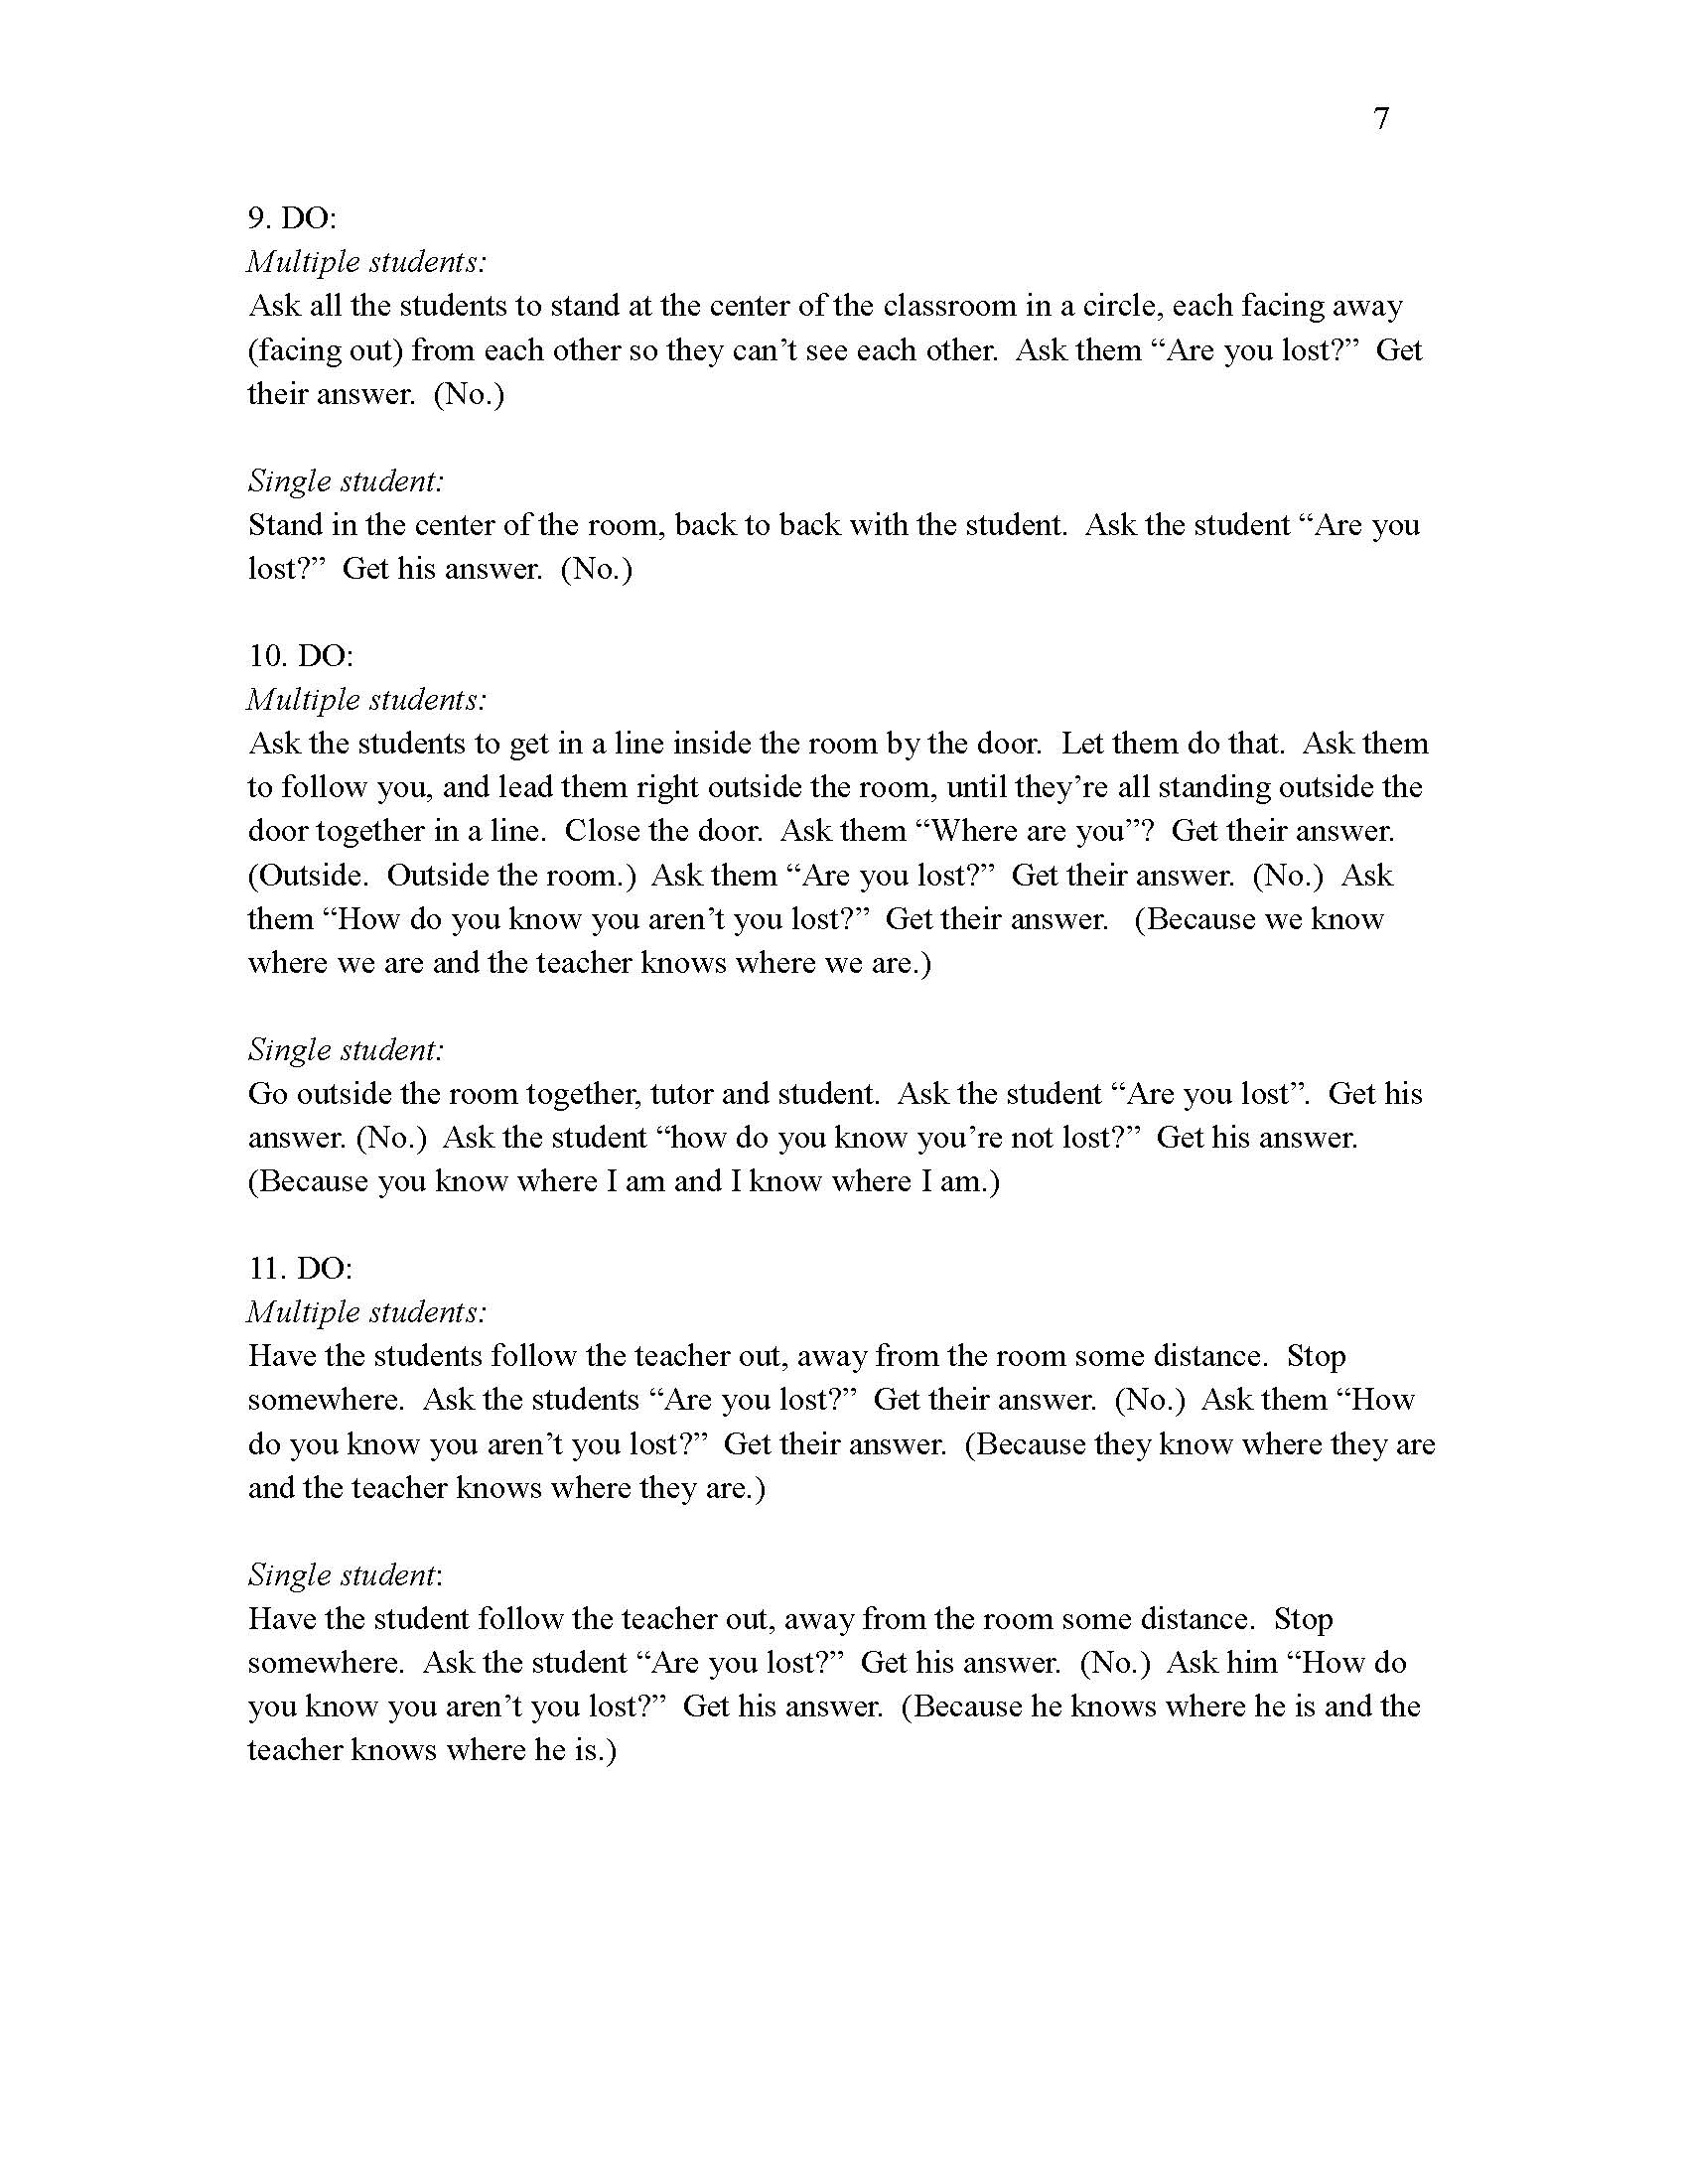 Sample Pages Step 1 Study & Life Skills 1 - Safety First 1_Page_08.jpg